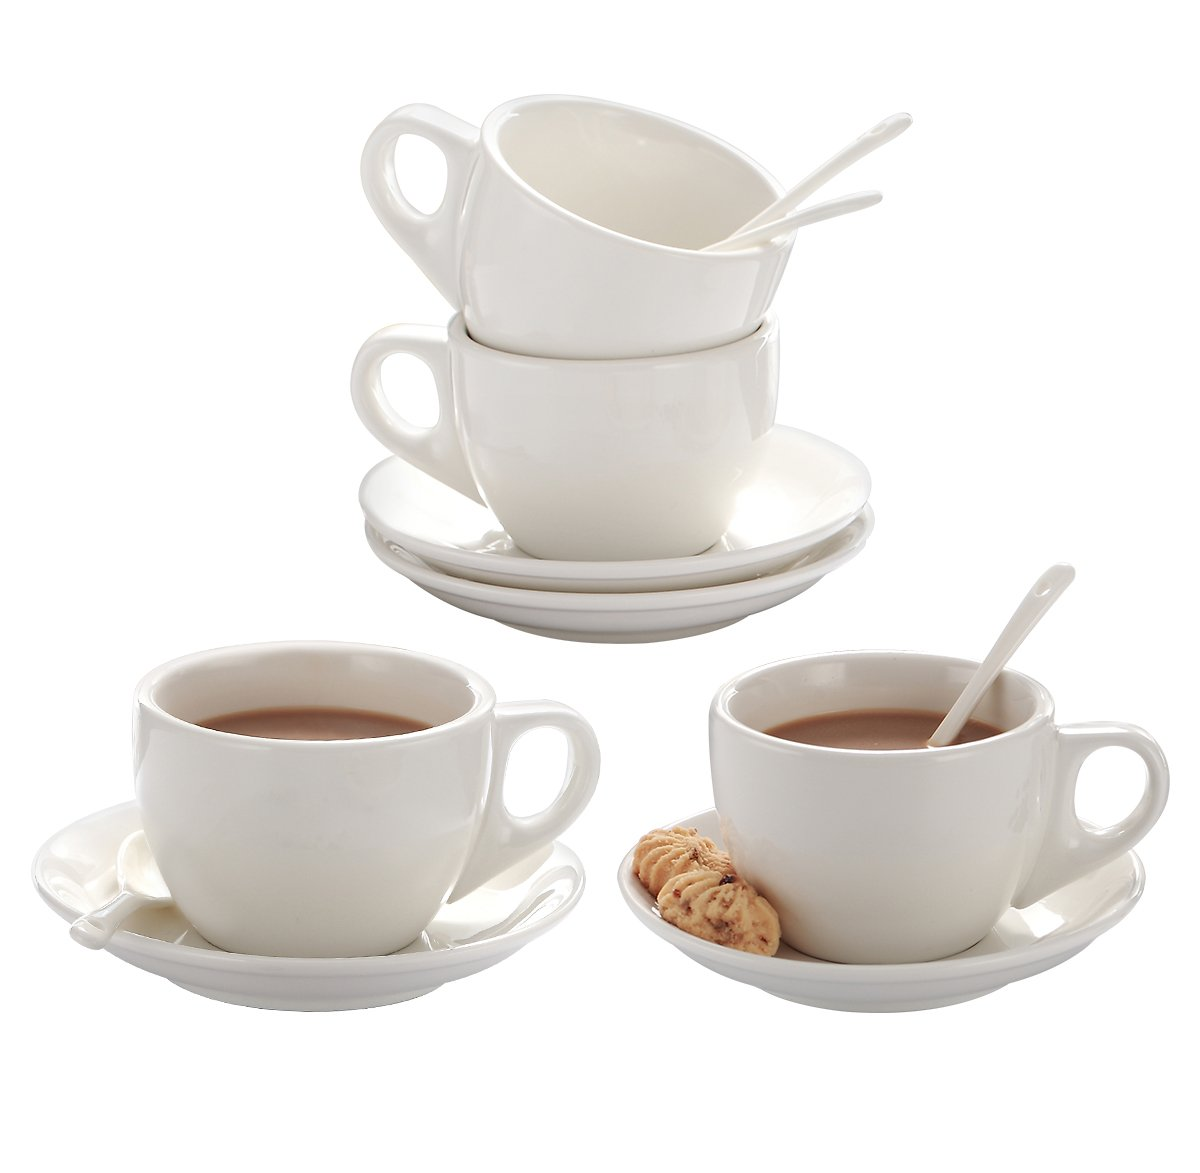 8 Ounce Porcelain Tea Cup and Saucer Set of 4 for Hot chocolate,Cafe, Cappuccino White with Porcelain Spoon Thick and Durable Handled Cup